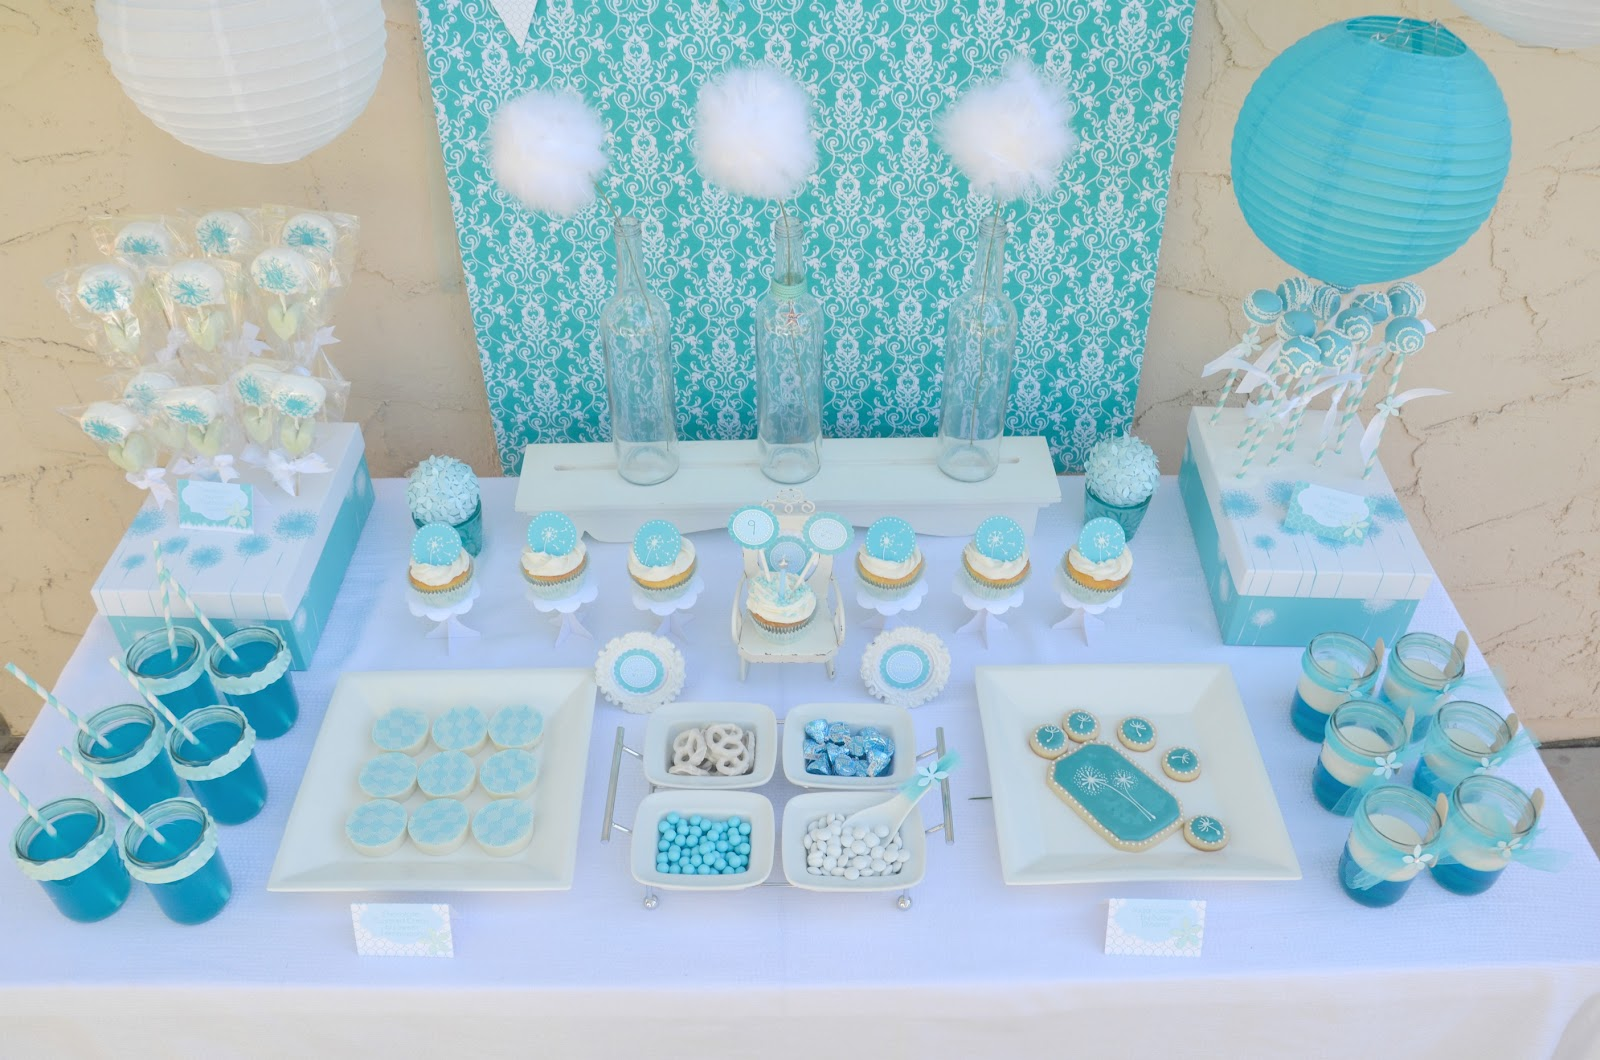 Crissy S Crafts Make A Wish Birthday Party